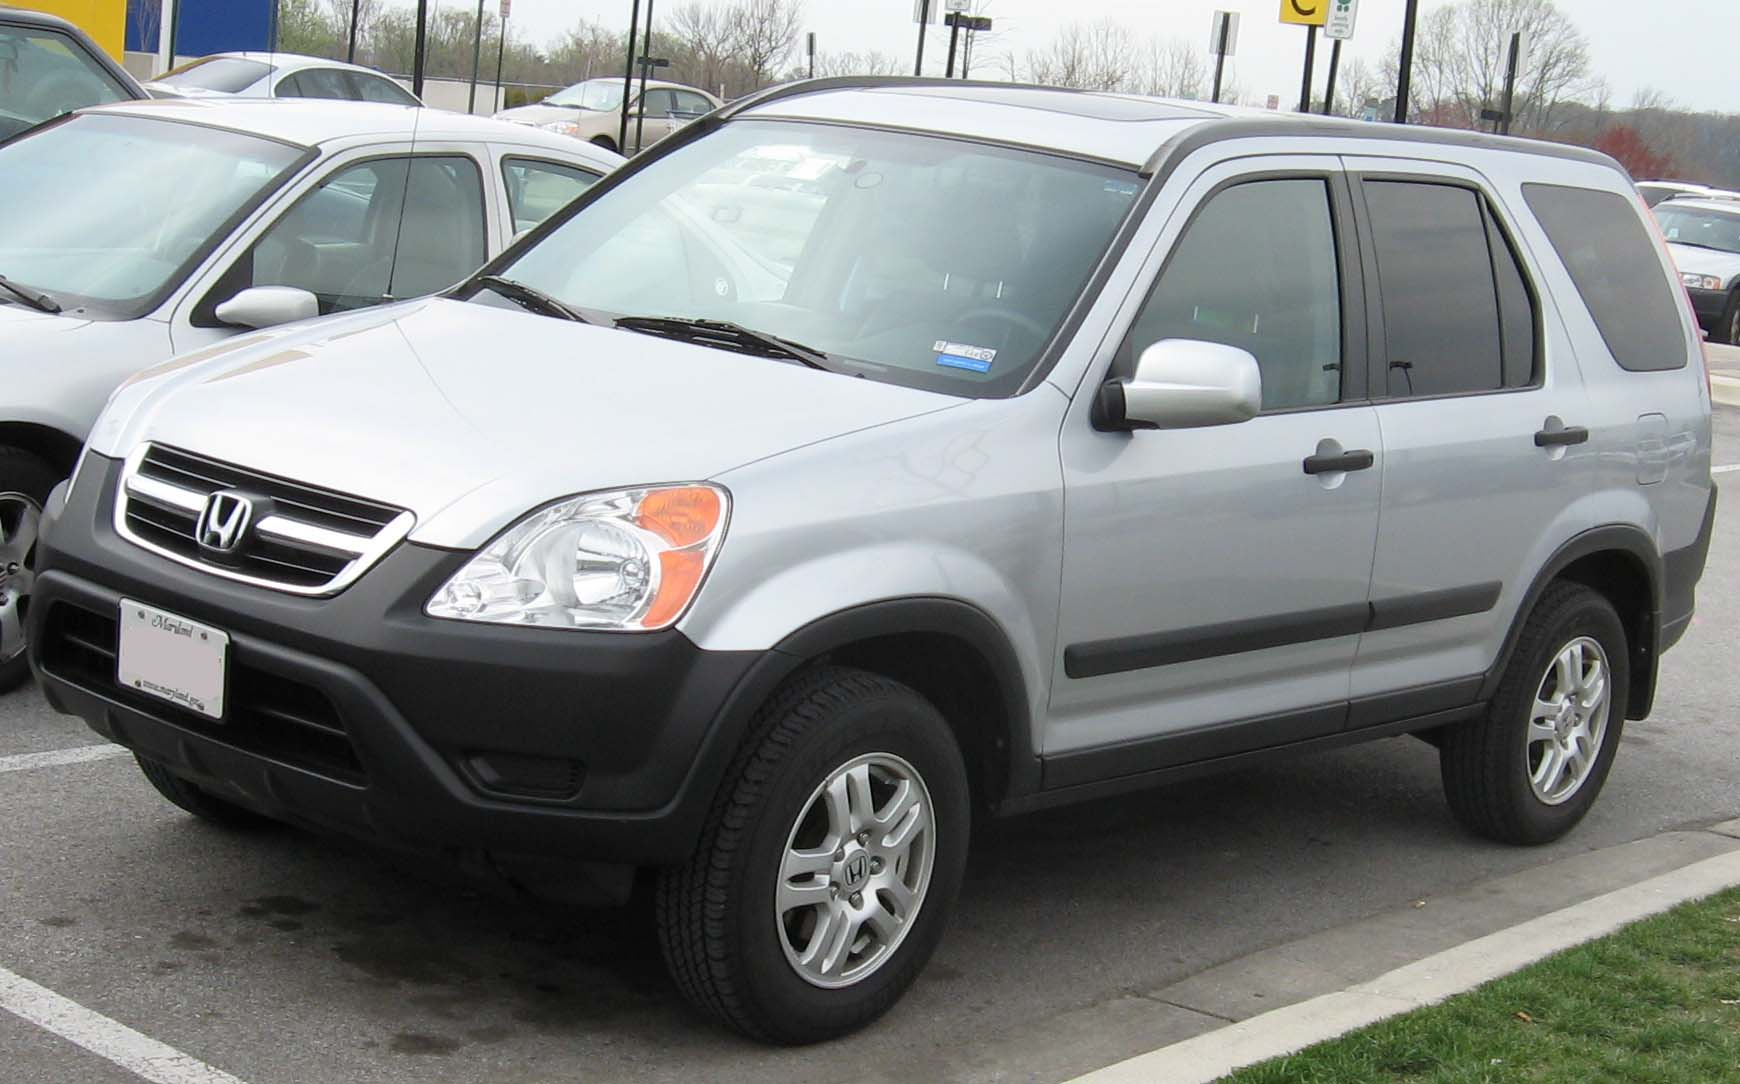 2004 Honda Cr-v Photos, Informations, Articles ...